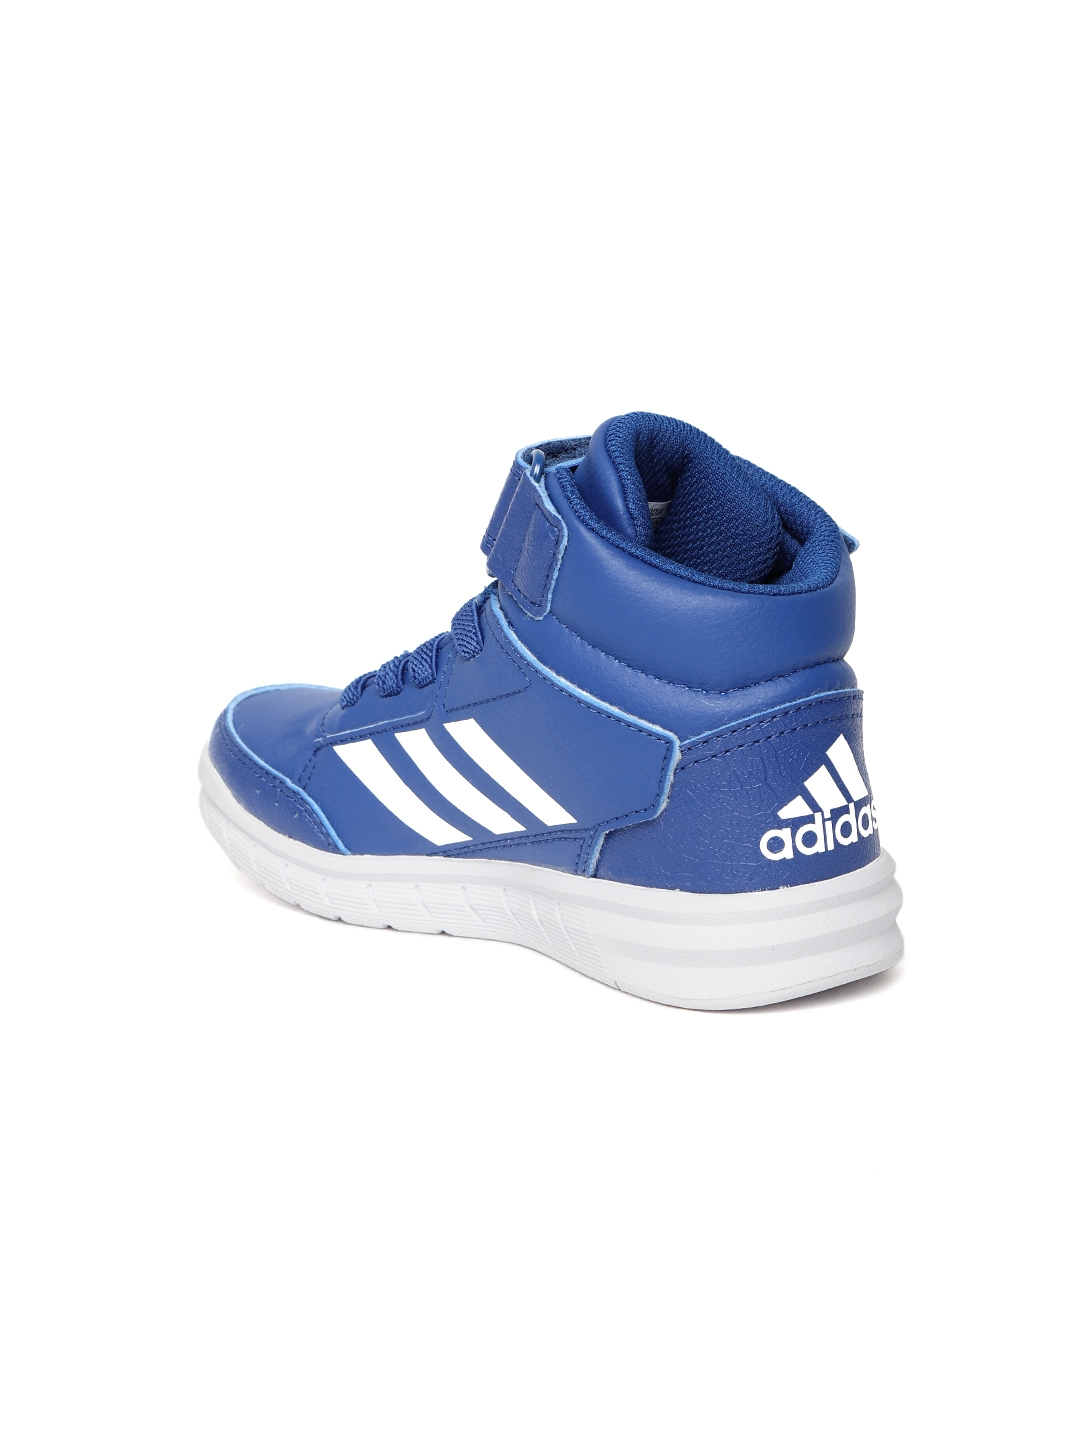 new arrival d49fe 6c096 Adidas Kids Blue Altasport Mid EL Training Shoes